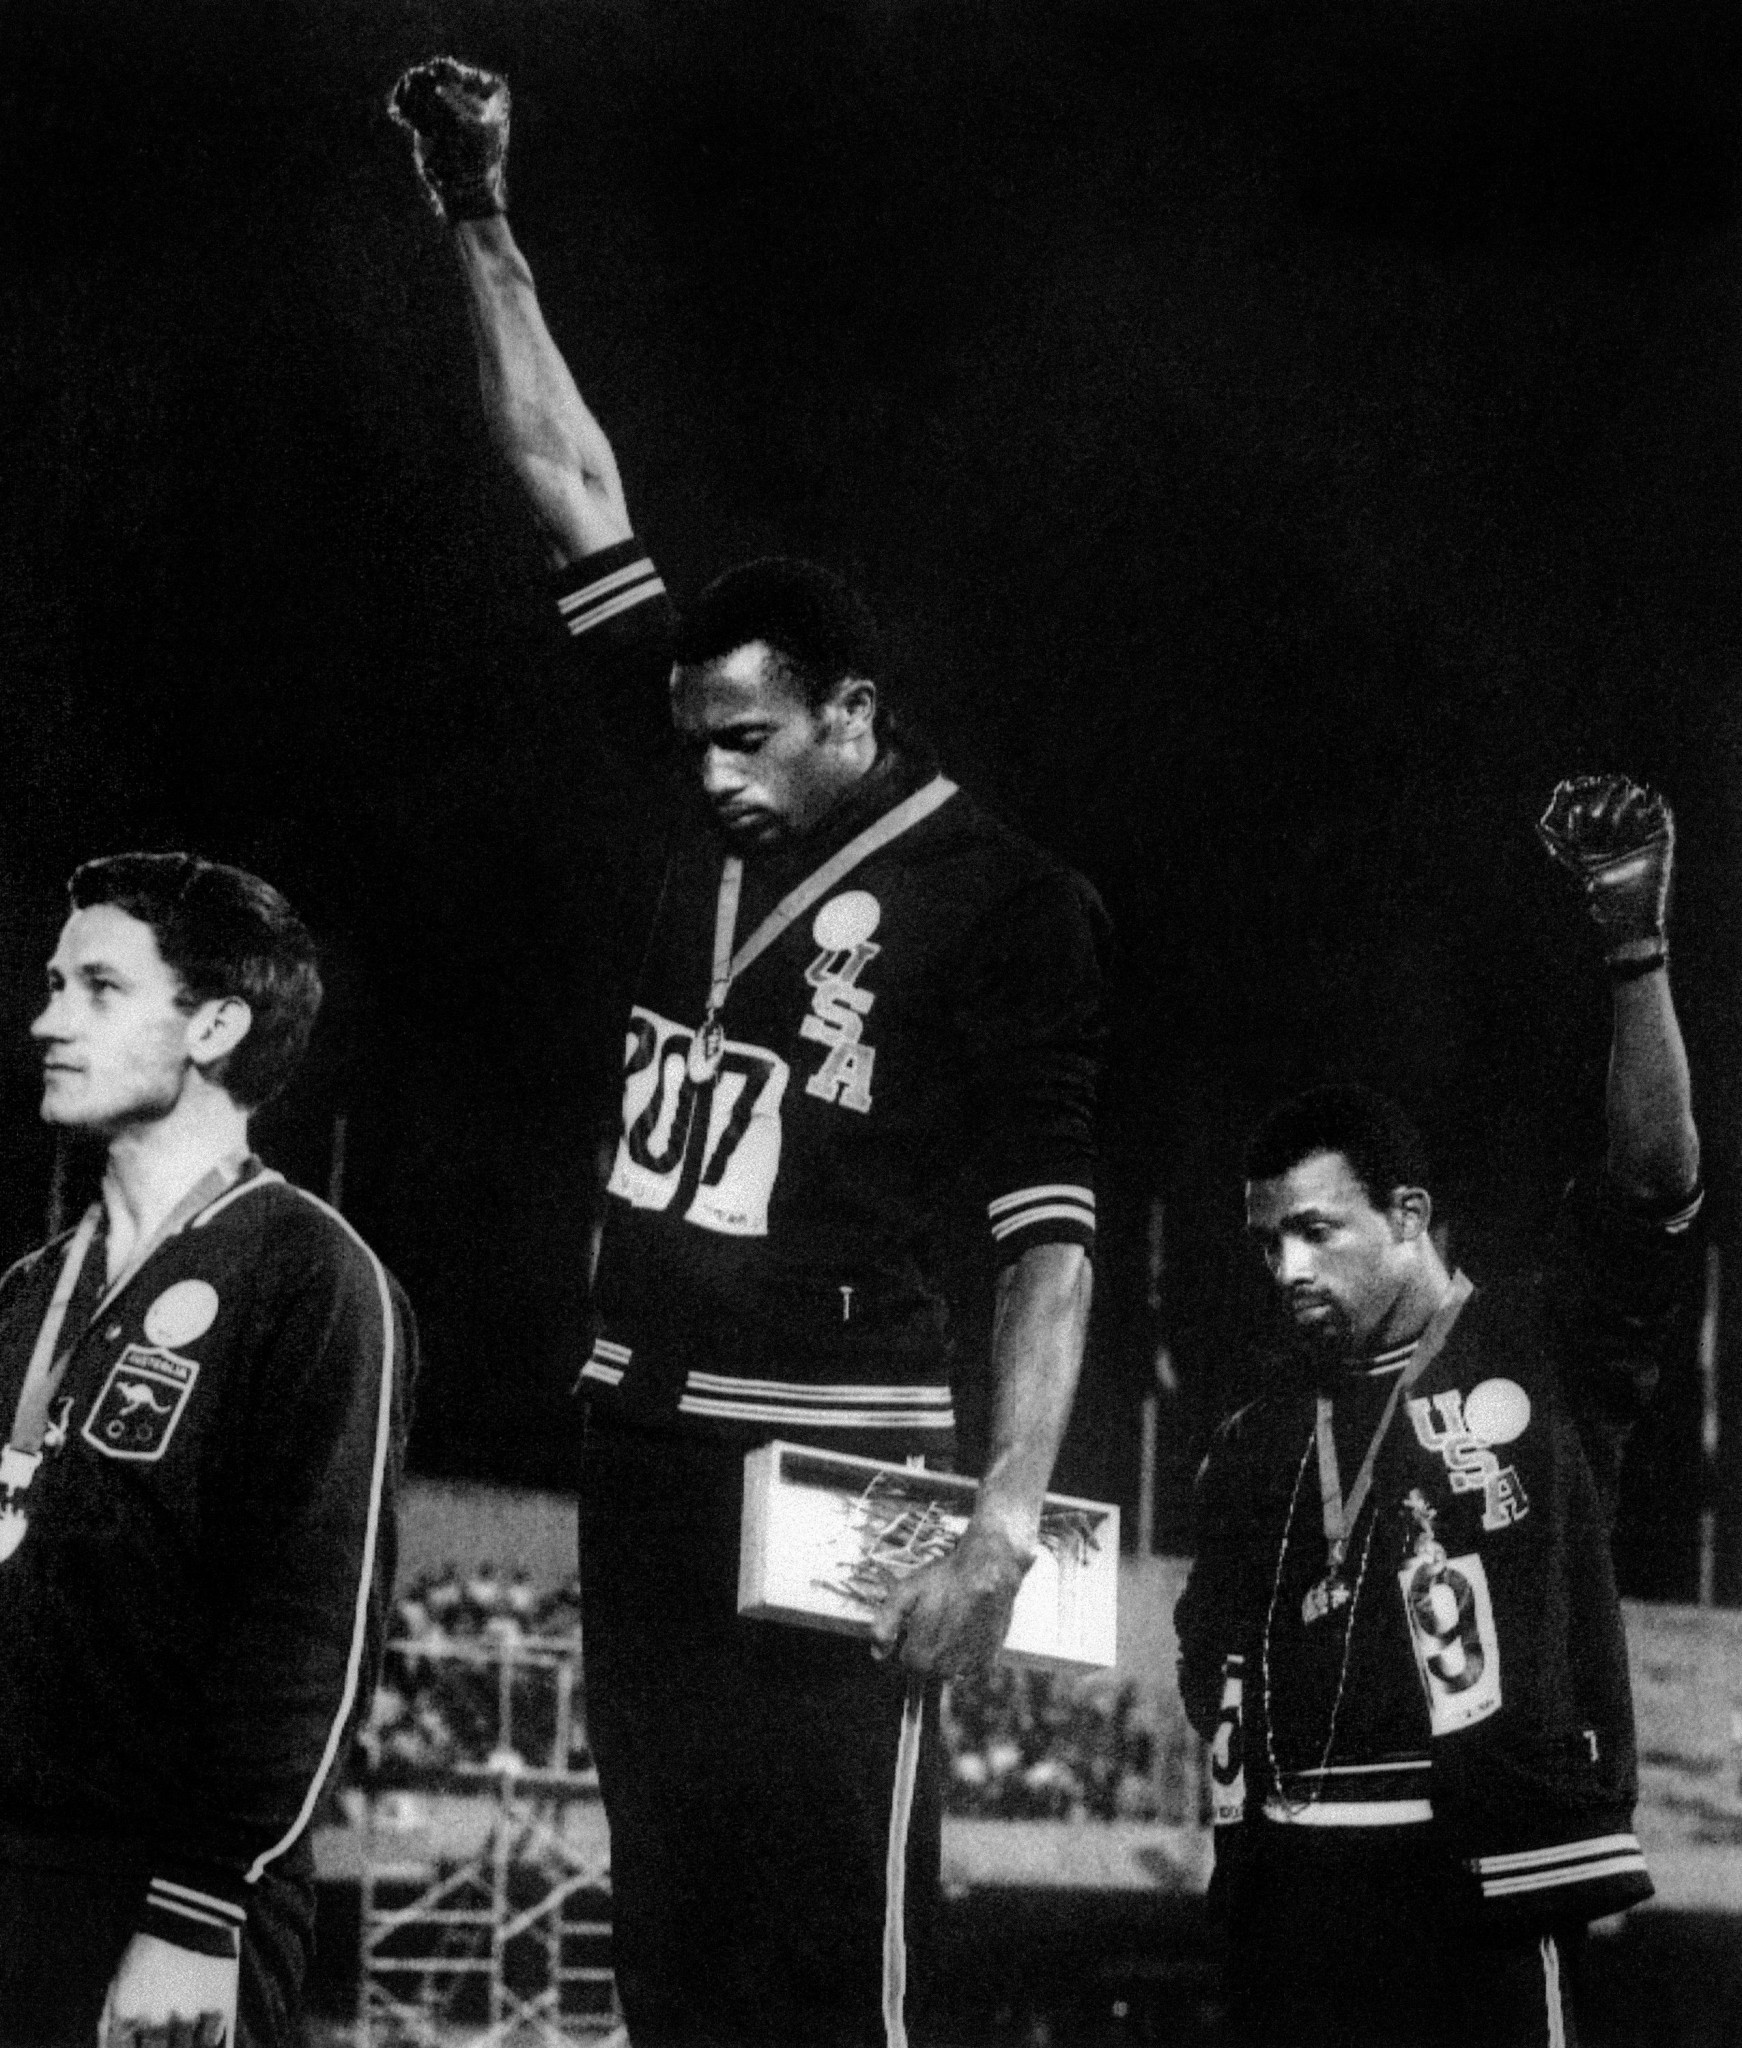 Tommie Smith, centre, and John Carlos, right, make their Black Power salutes at the medal ceremony for the 200m at the 1968 Mexico Games ©Getty Images